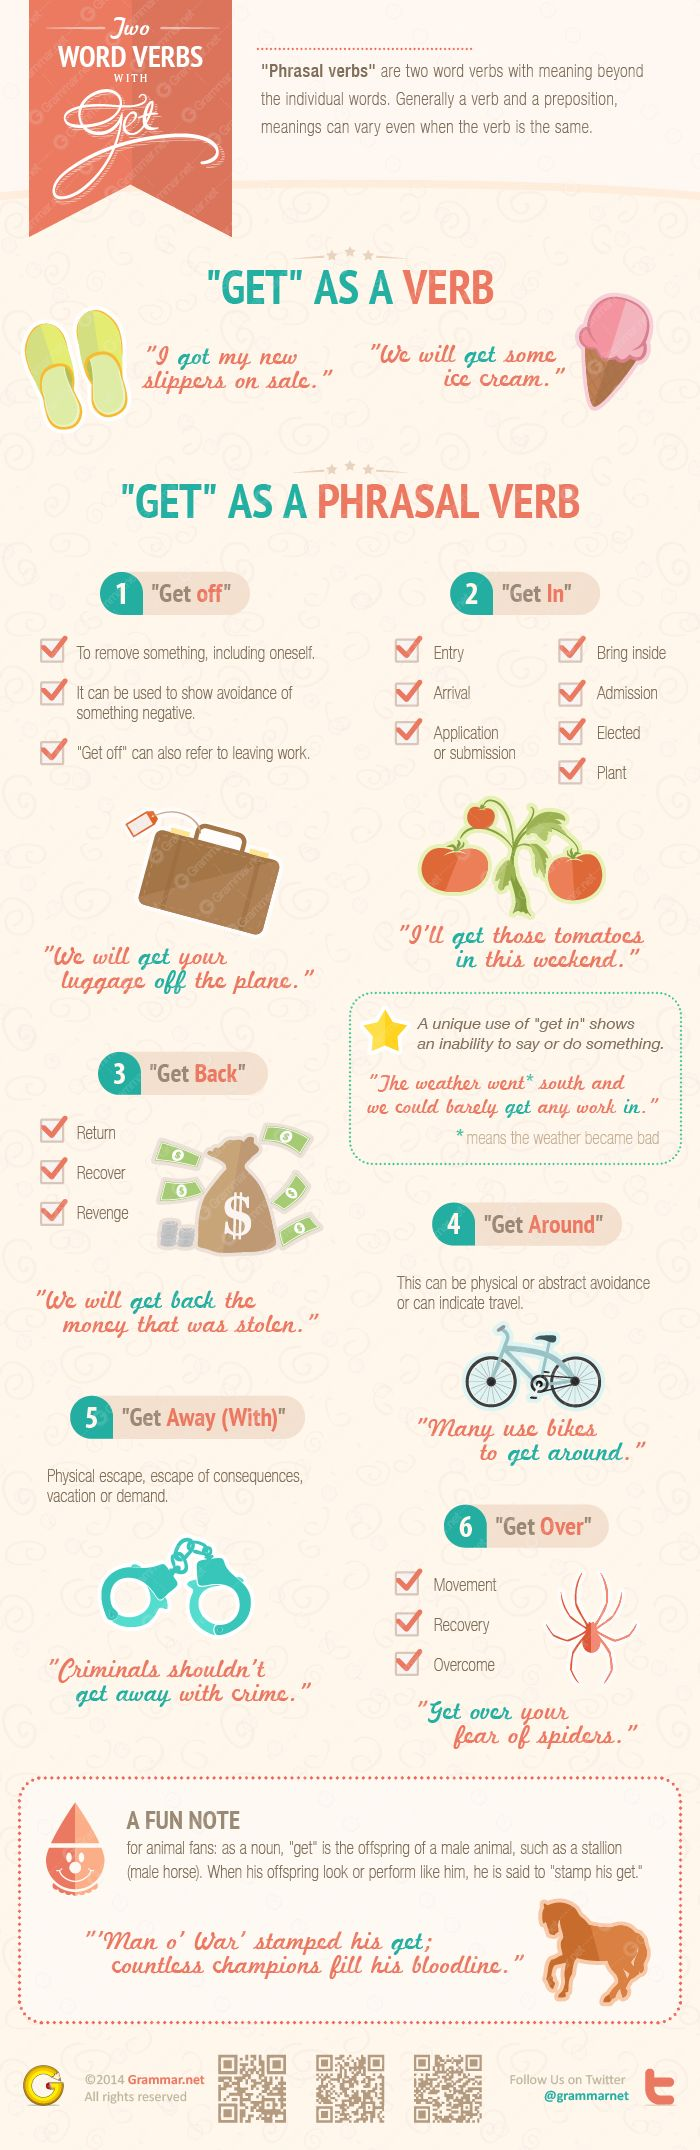 Aprende inglés: two words with get - phrasal vía: www.granmar.net #infografia #infographic #education